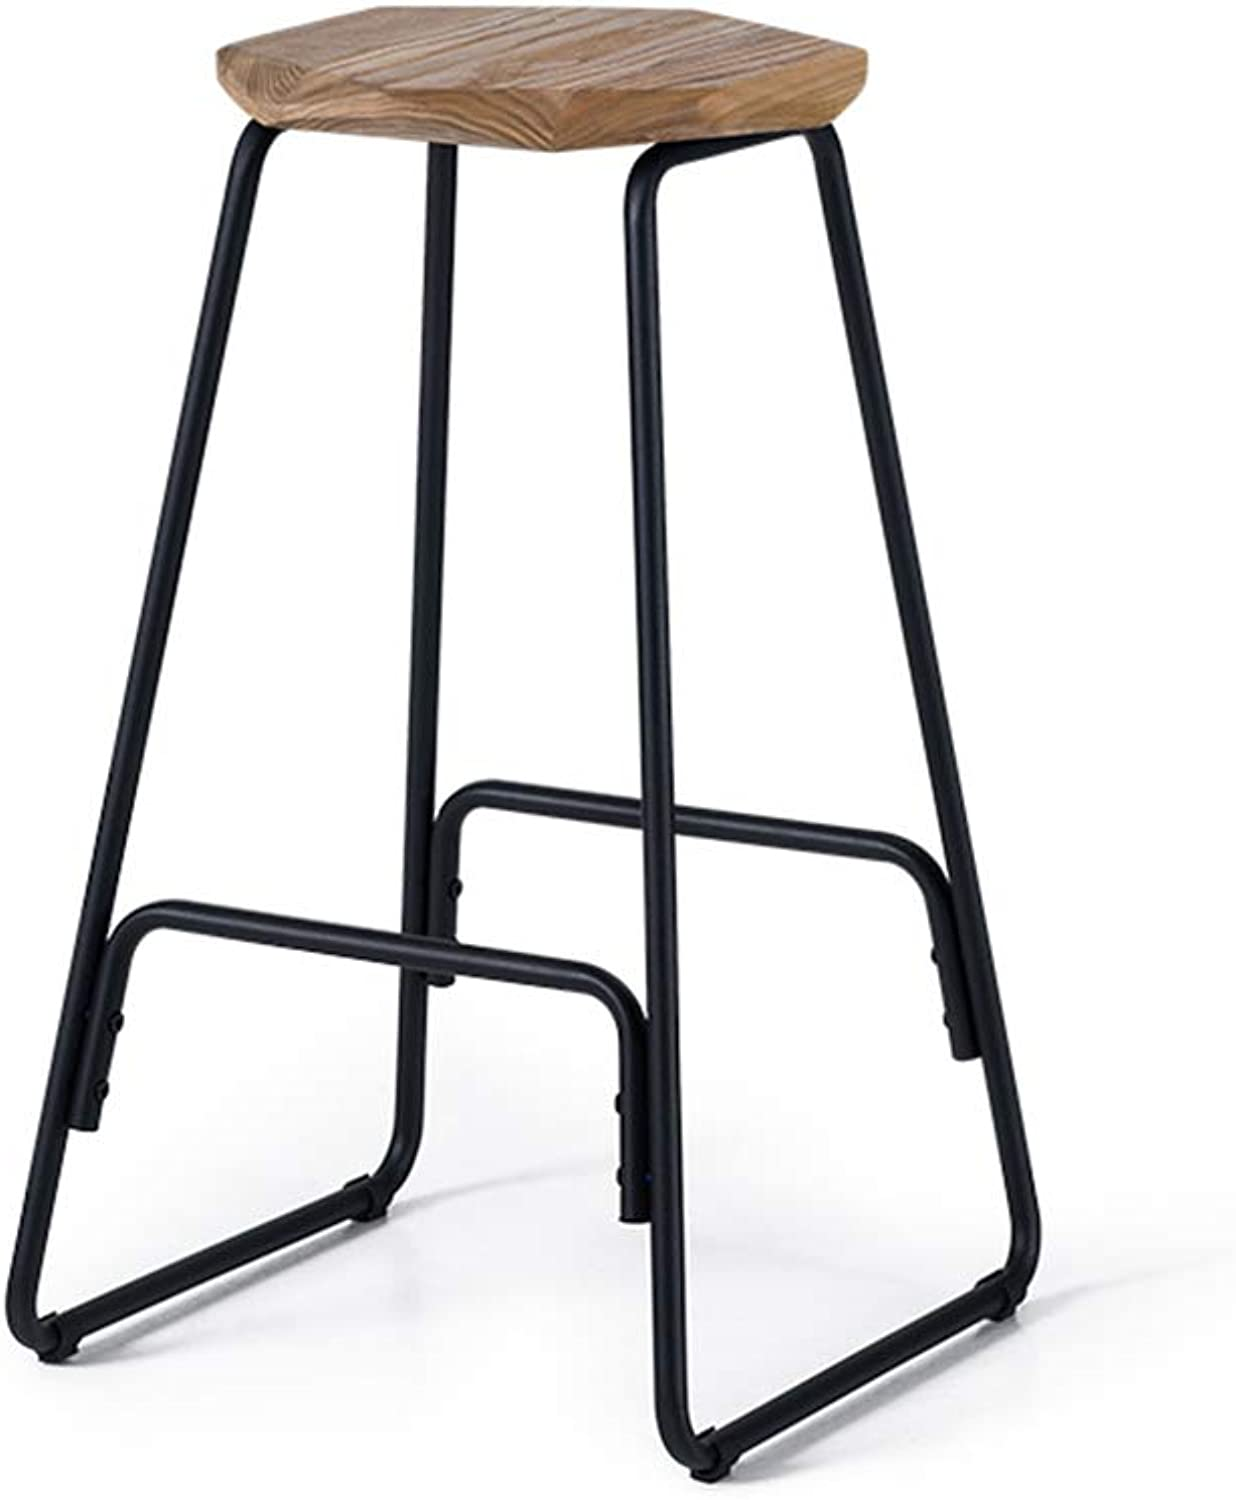 Floor-Standing high Bracket Bar Stool Portable Wrought Adjustable Stool Leg Modern Minimalist bar Chair Solid Wood high Stool Retro Stool Suitable for Counter Kitchen Breakfast Chairs